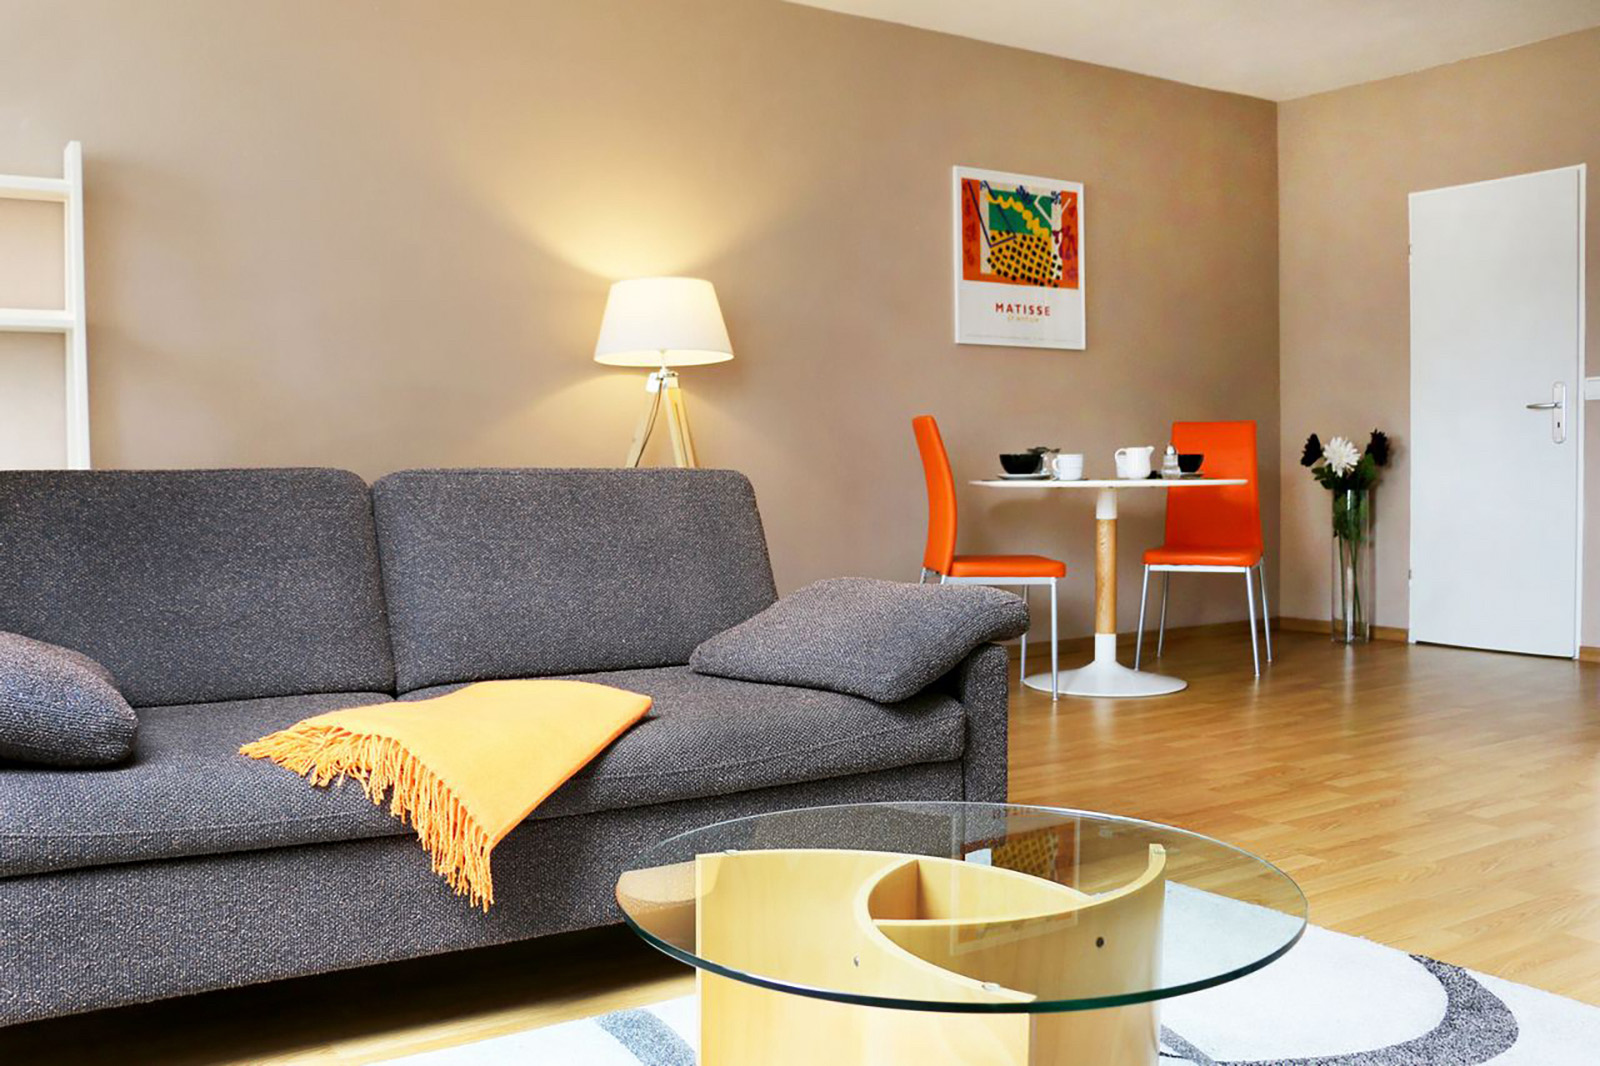 Main Wohnzimmer Offenbach Of15 Geismar Furnished Living